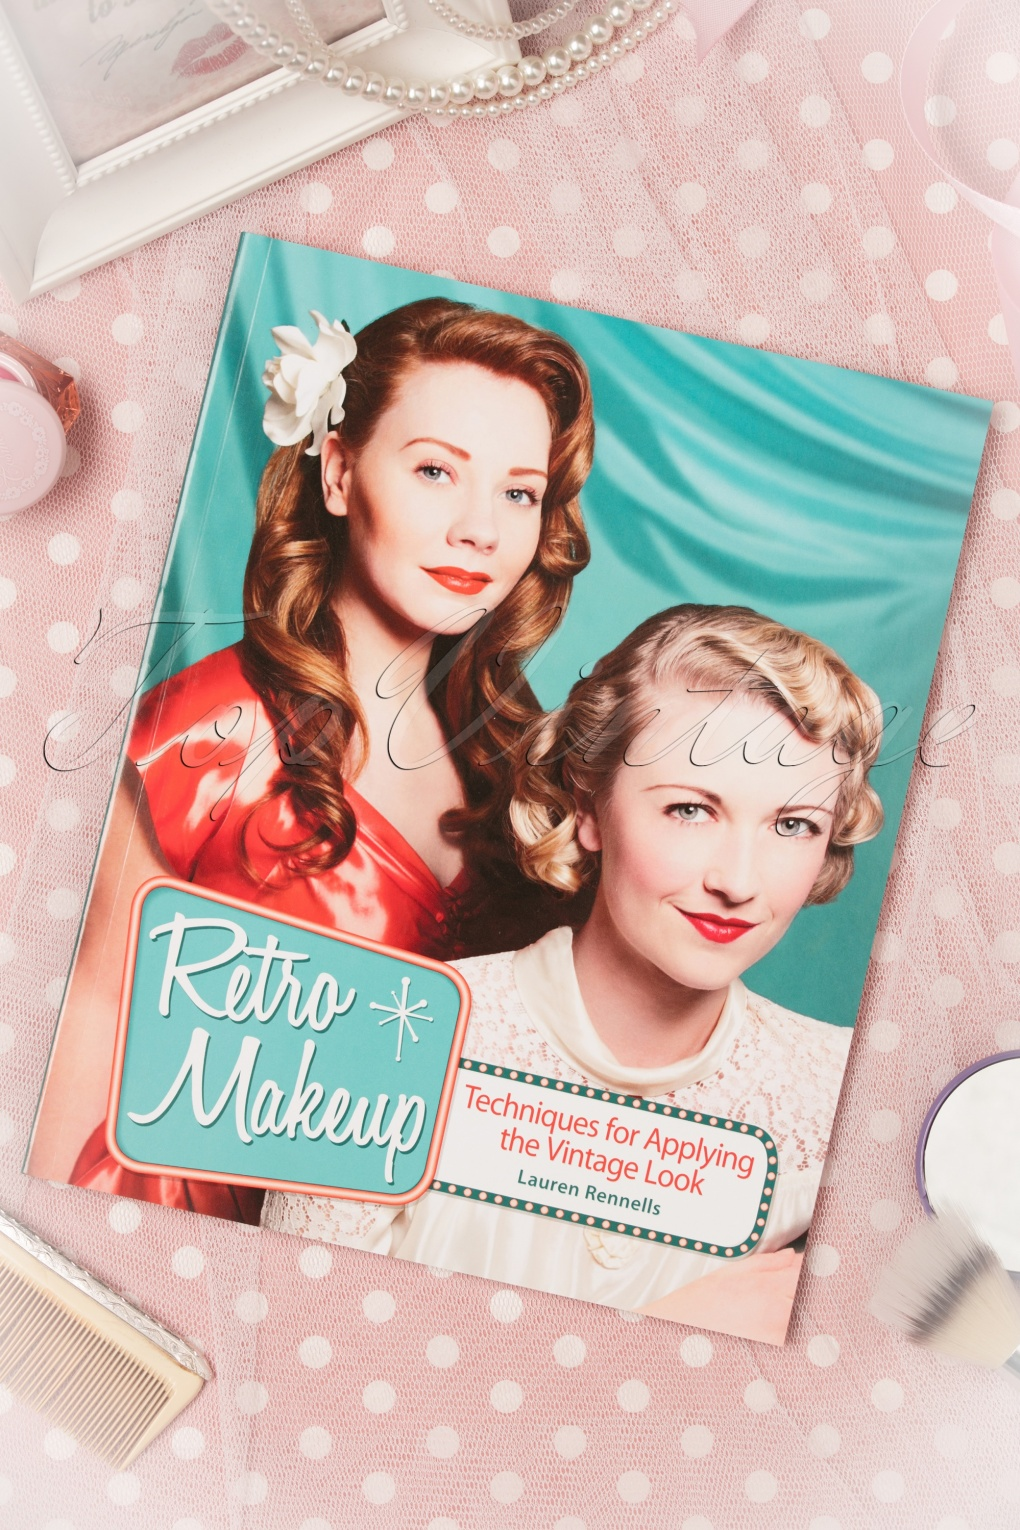 1950s Fashion Books | 50s Fashion History Research Retro Makeup Techniques for Applying the Vintage Look £20.09 AT vintagedancer.com